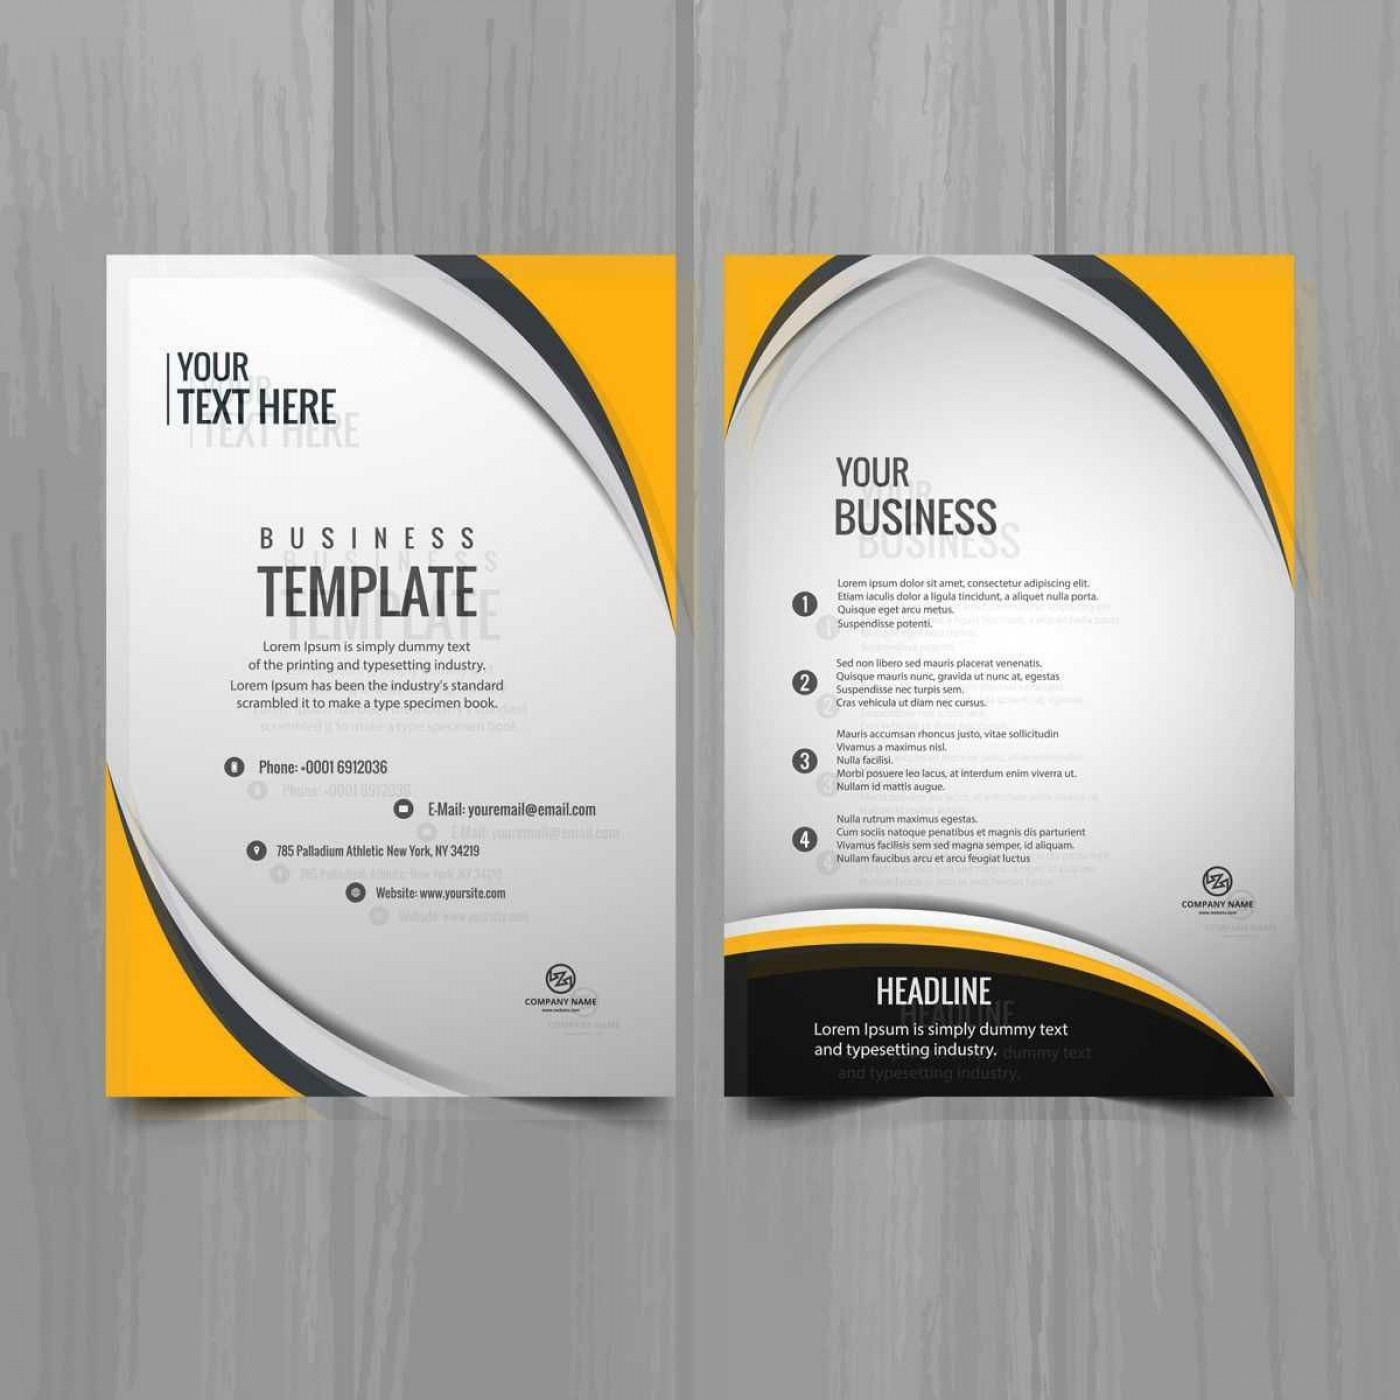 000 Marvelou Busines Brochure Design Template Free Download Sample 1400